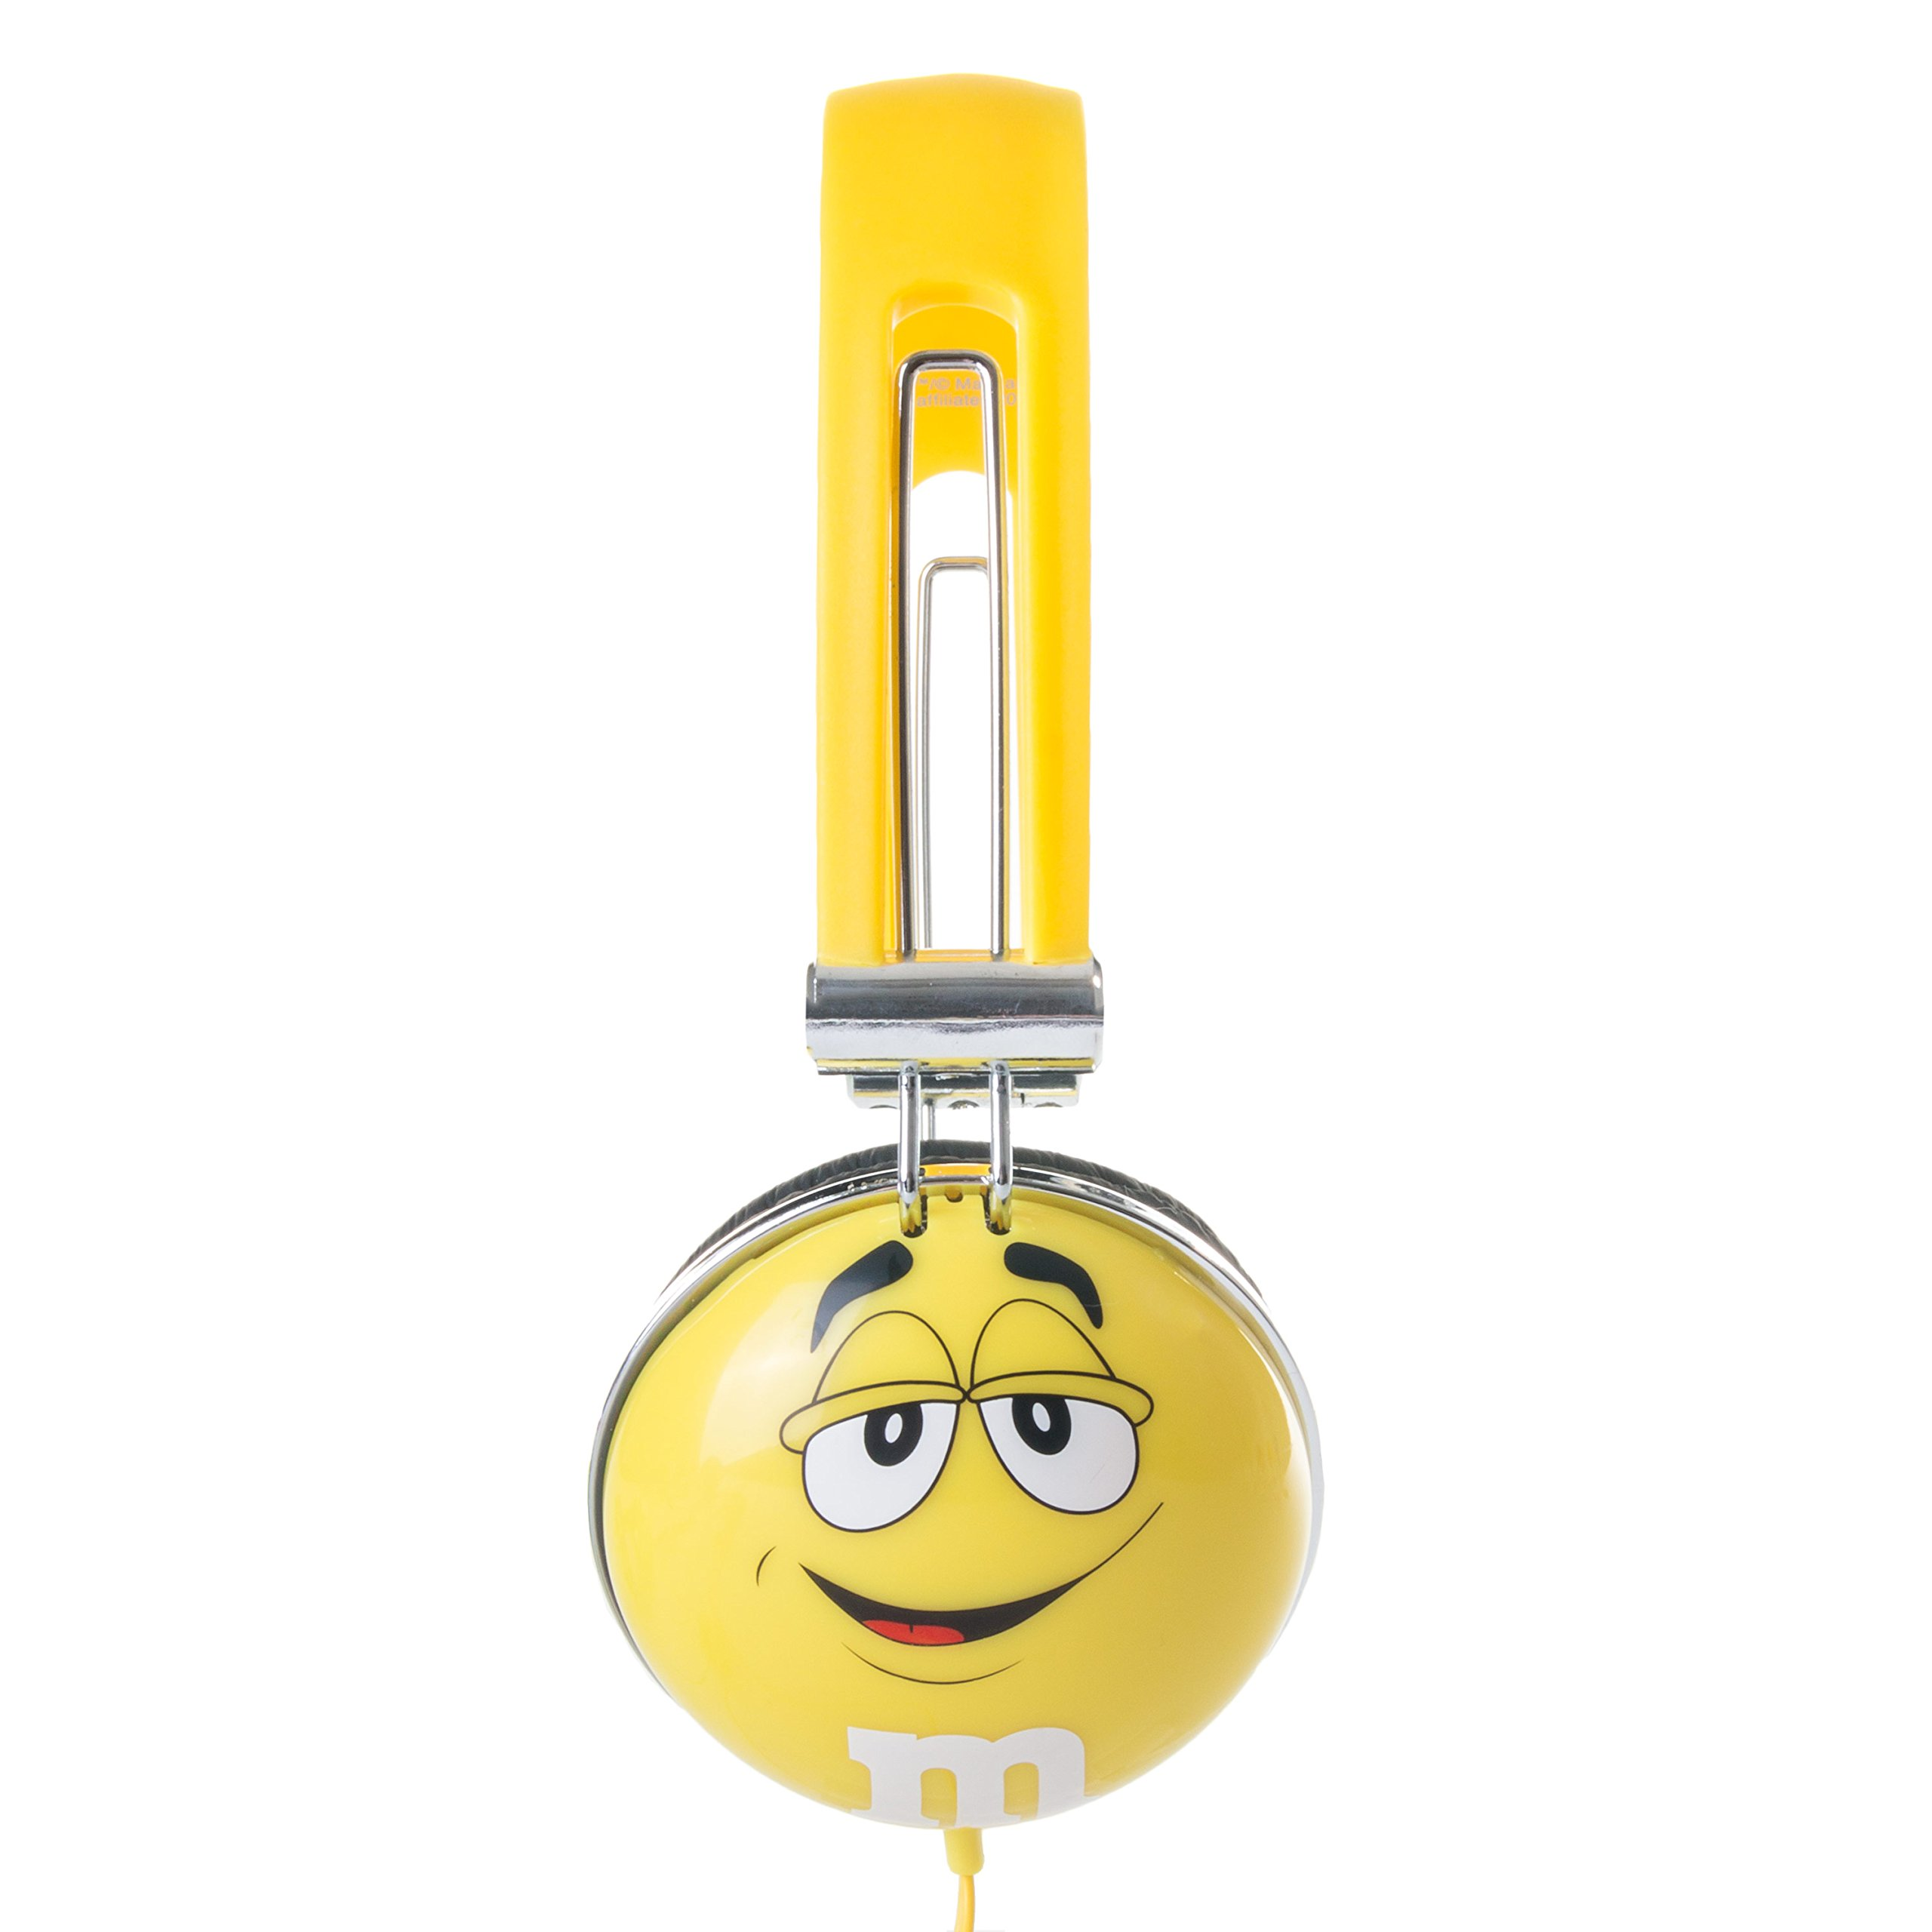 iHip M&M'S Brand Comfort Fit Headphones for iPhone, iPad, iPod, Samsung or Any Smartphone, MP3 Player or Tablet